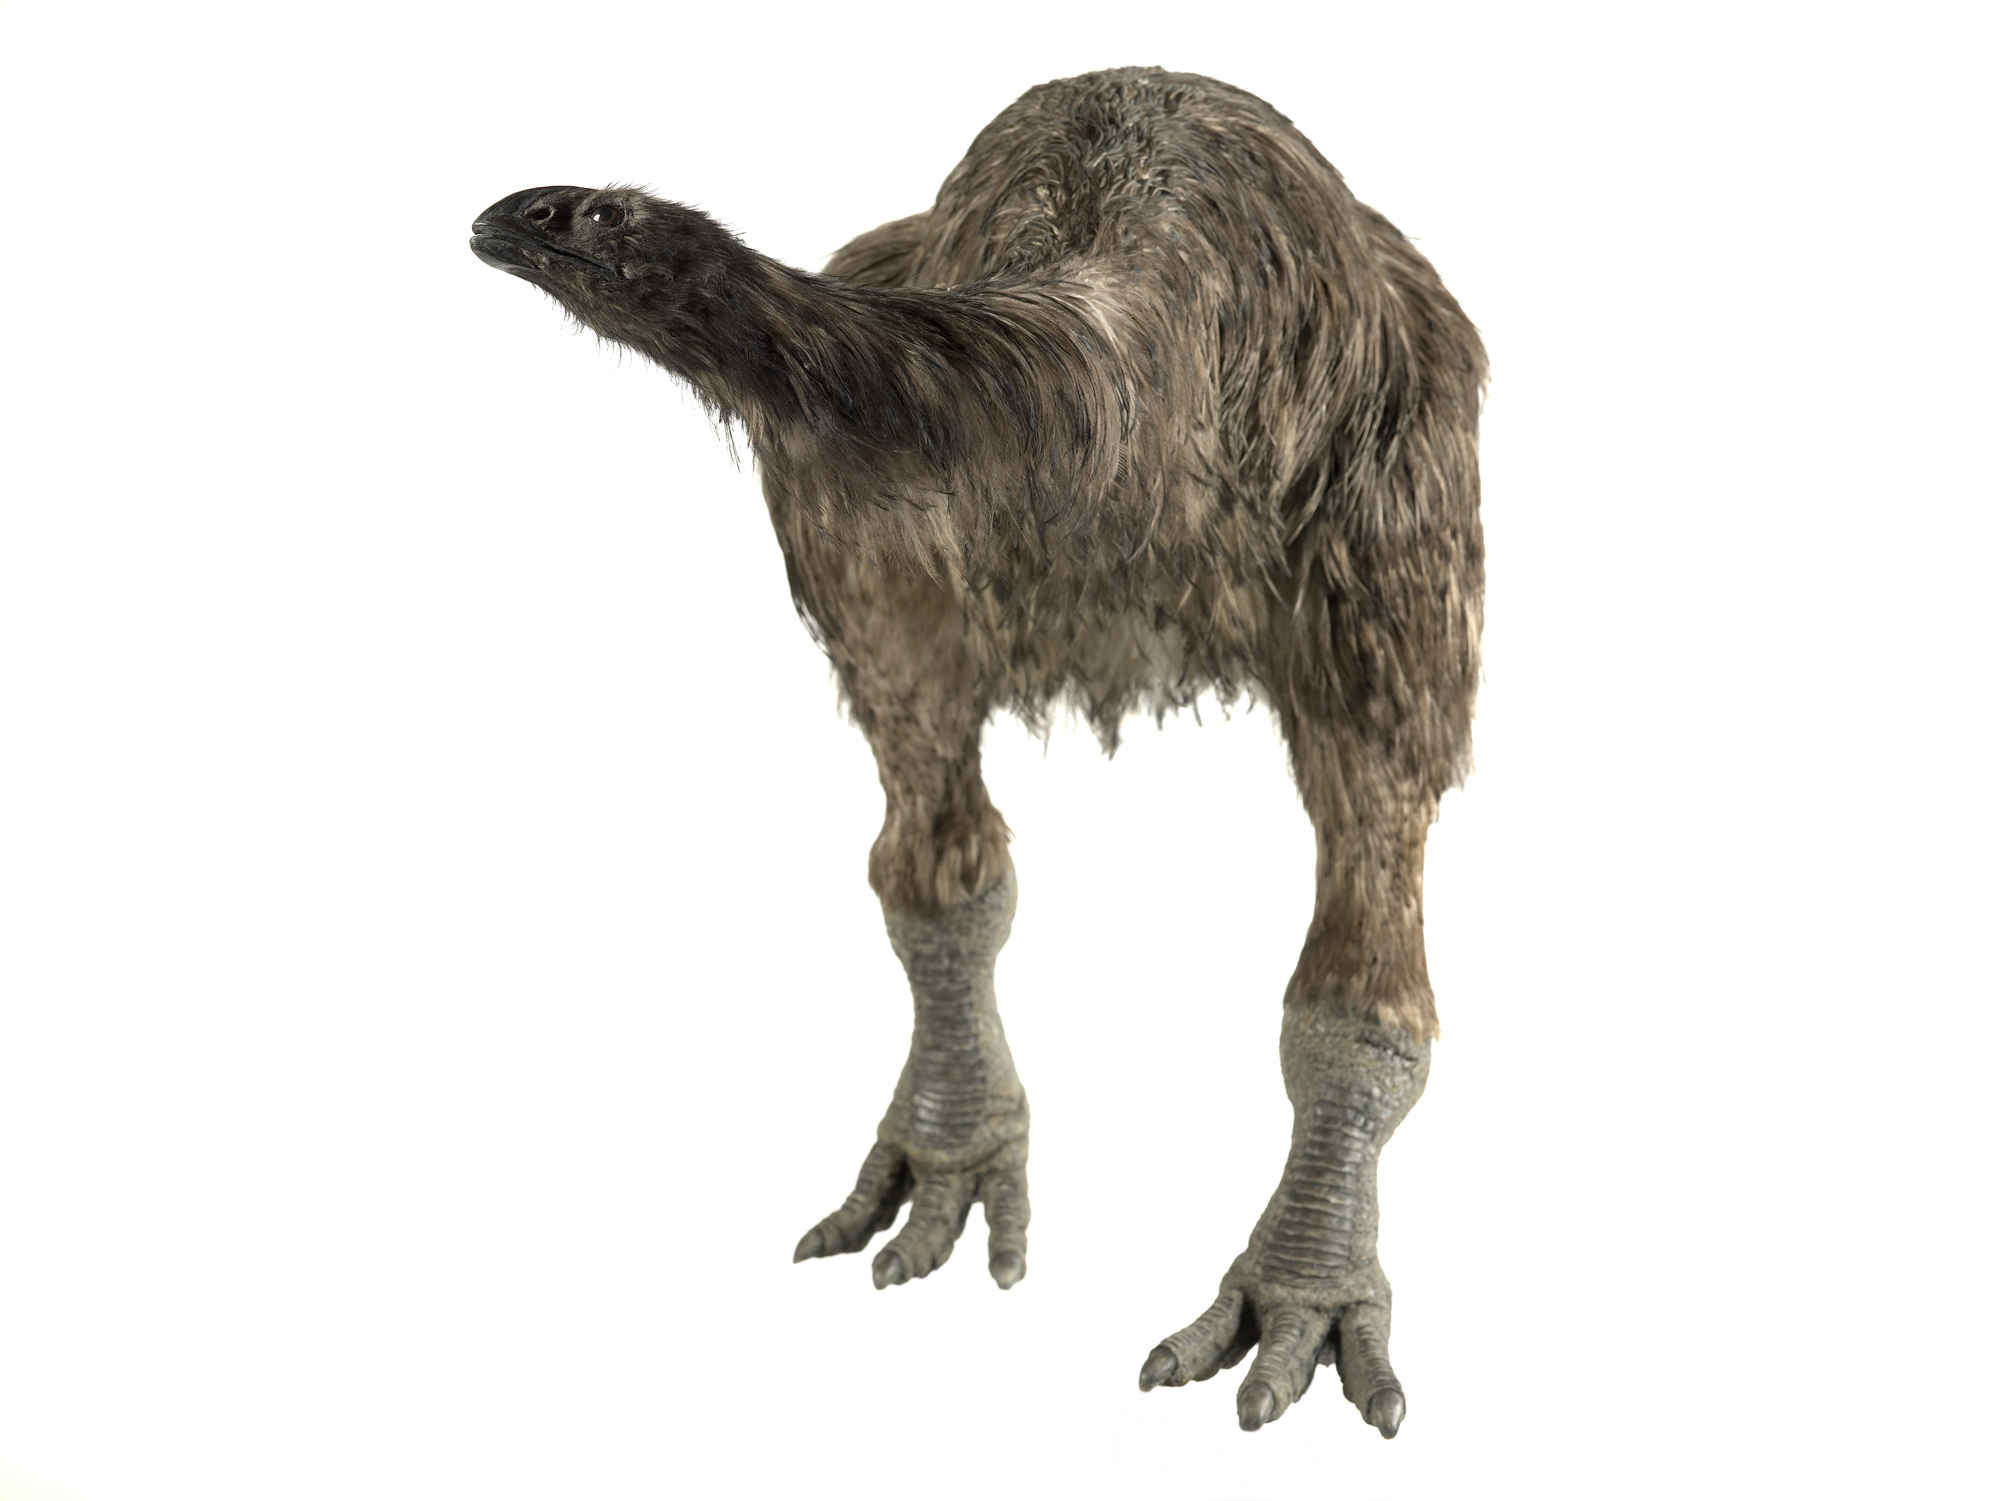 Broad-billed Moa clipart #1, Download drawings